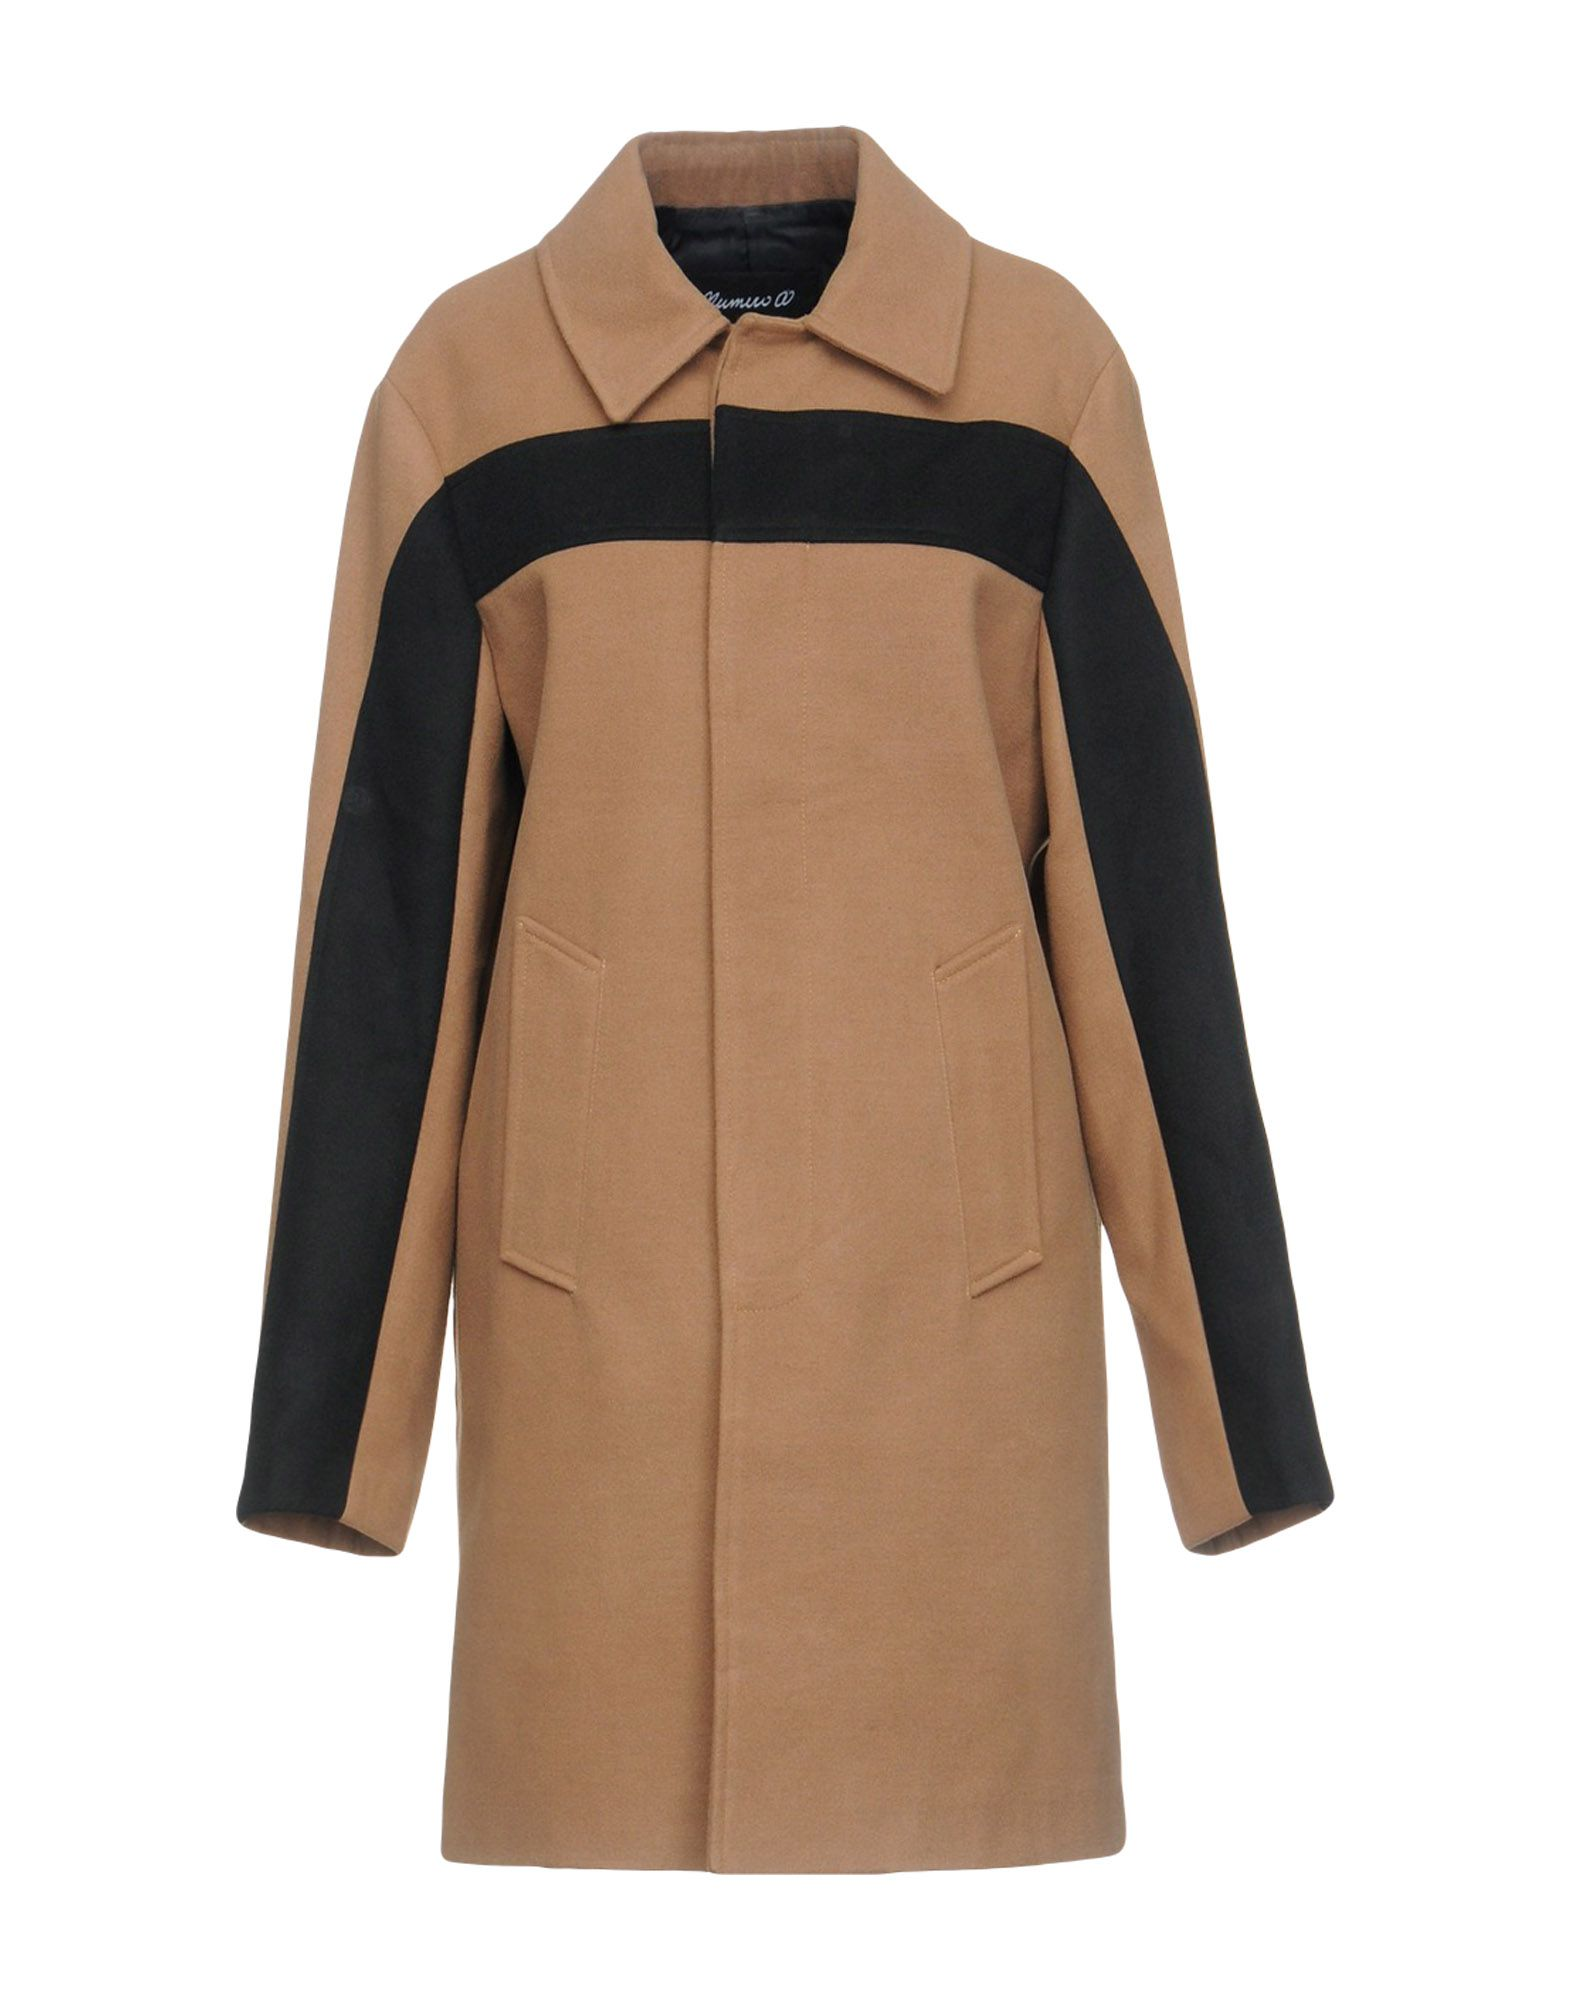 NUMERO00 Coat in Khaki